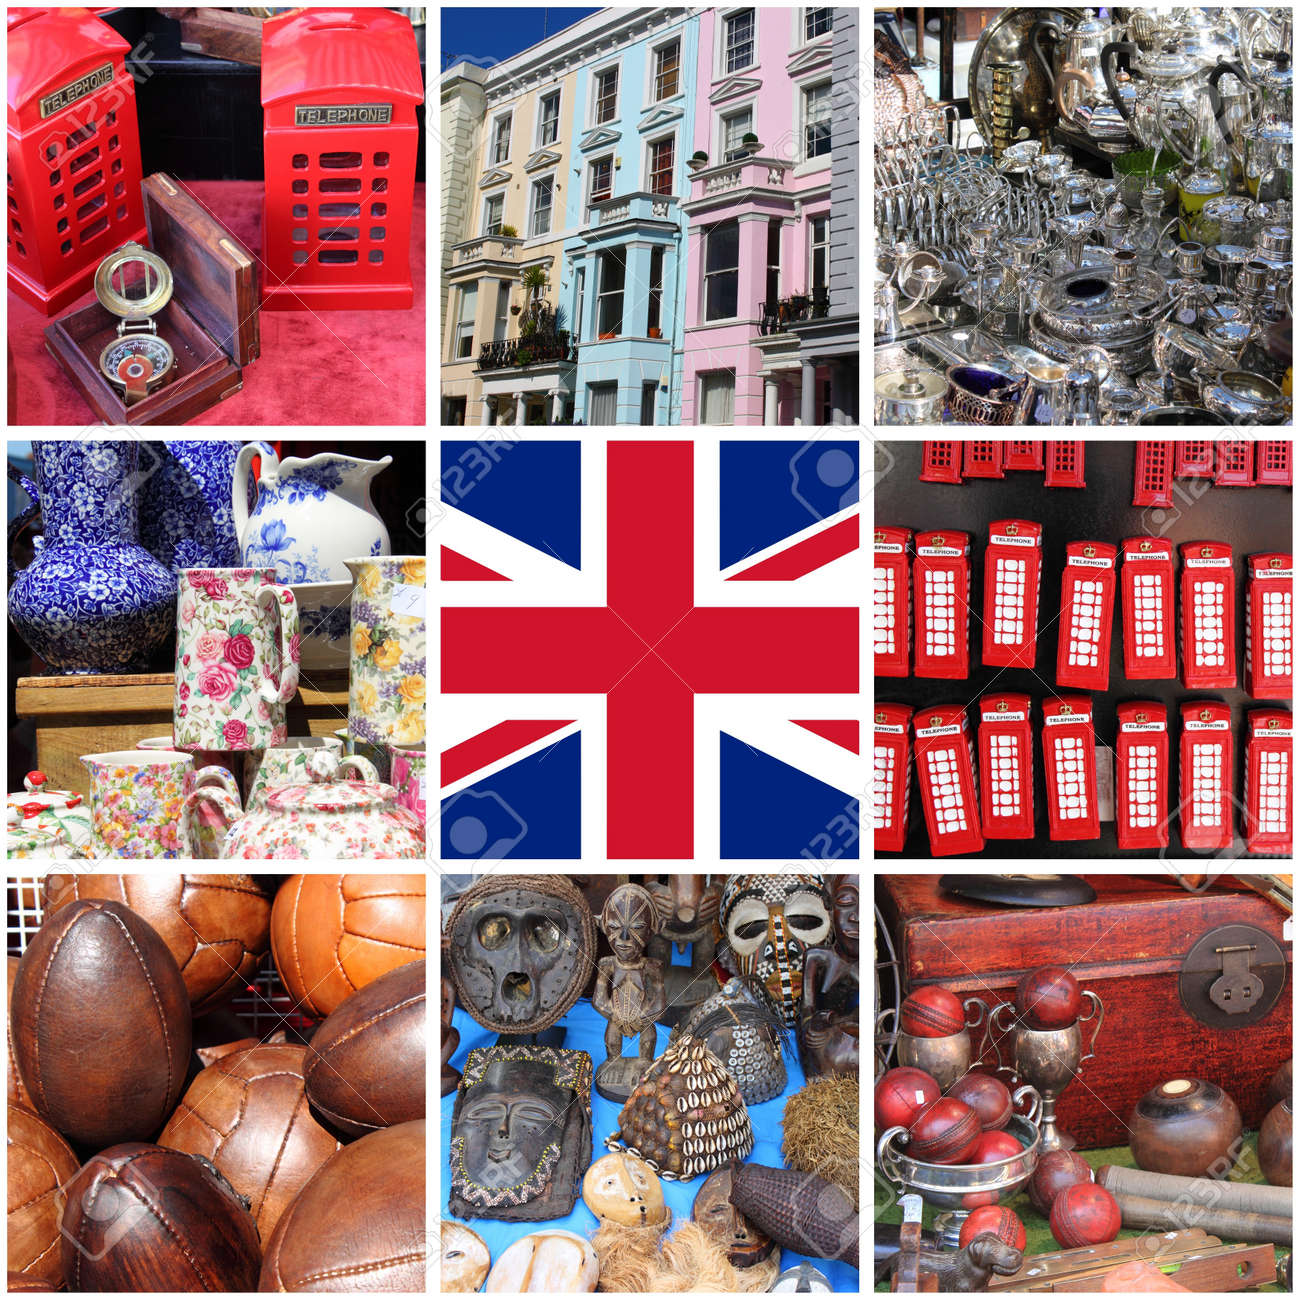 Collage of images of Portobello Road Market  London, UK Stock Photo - 20014586